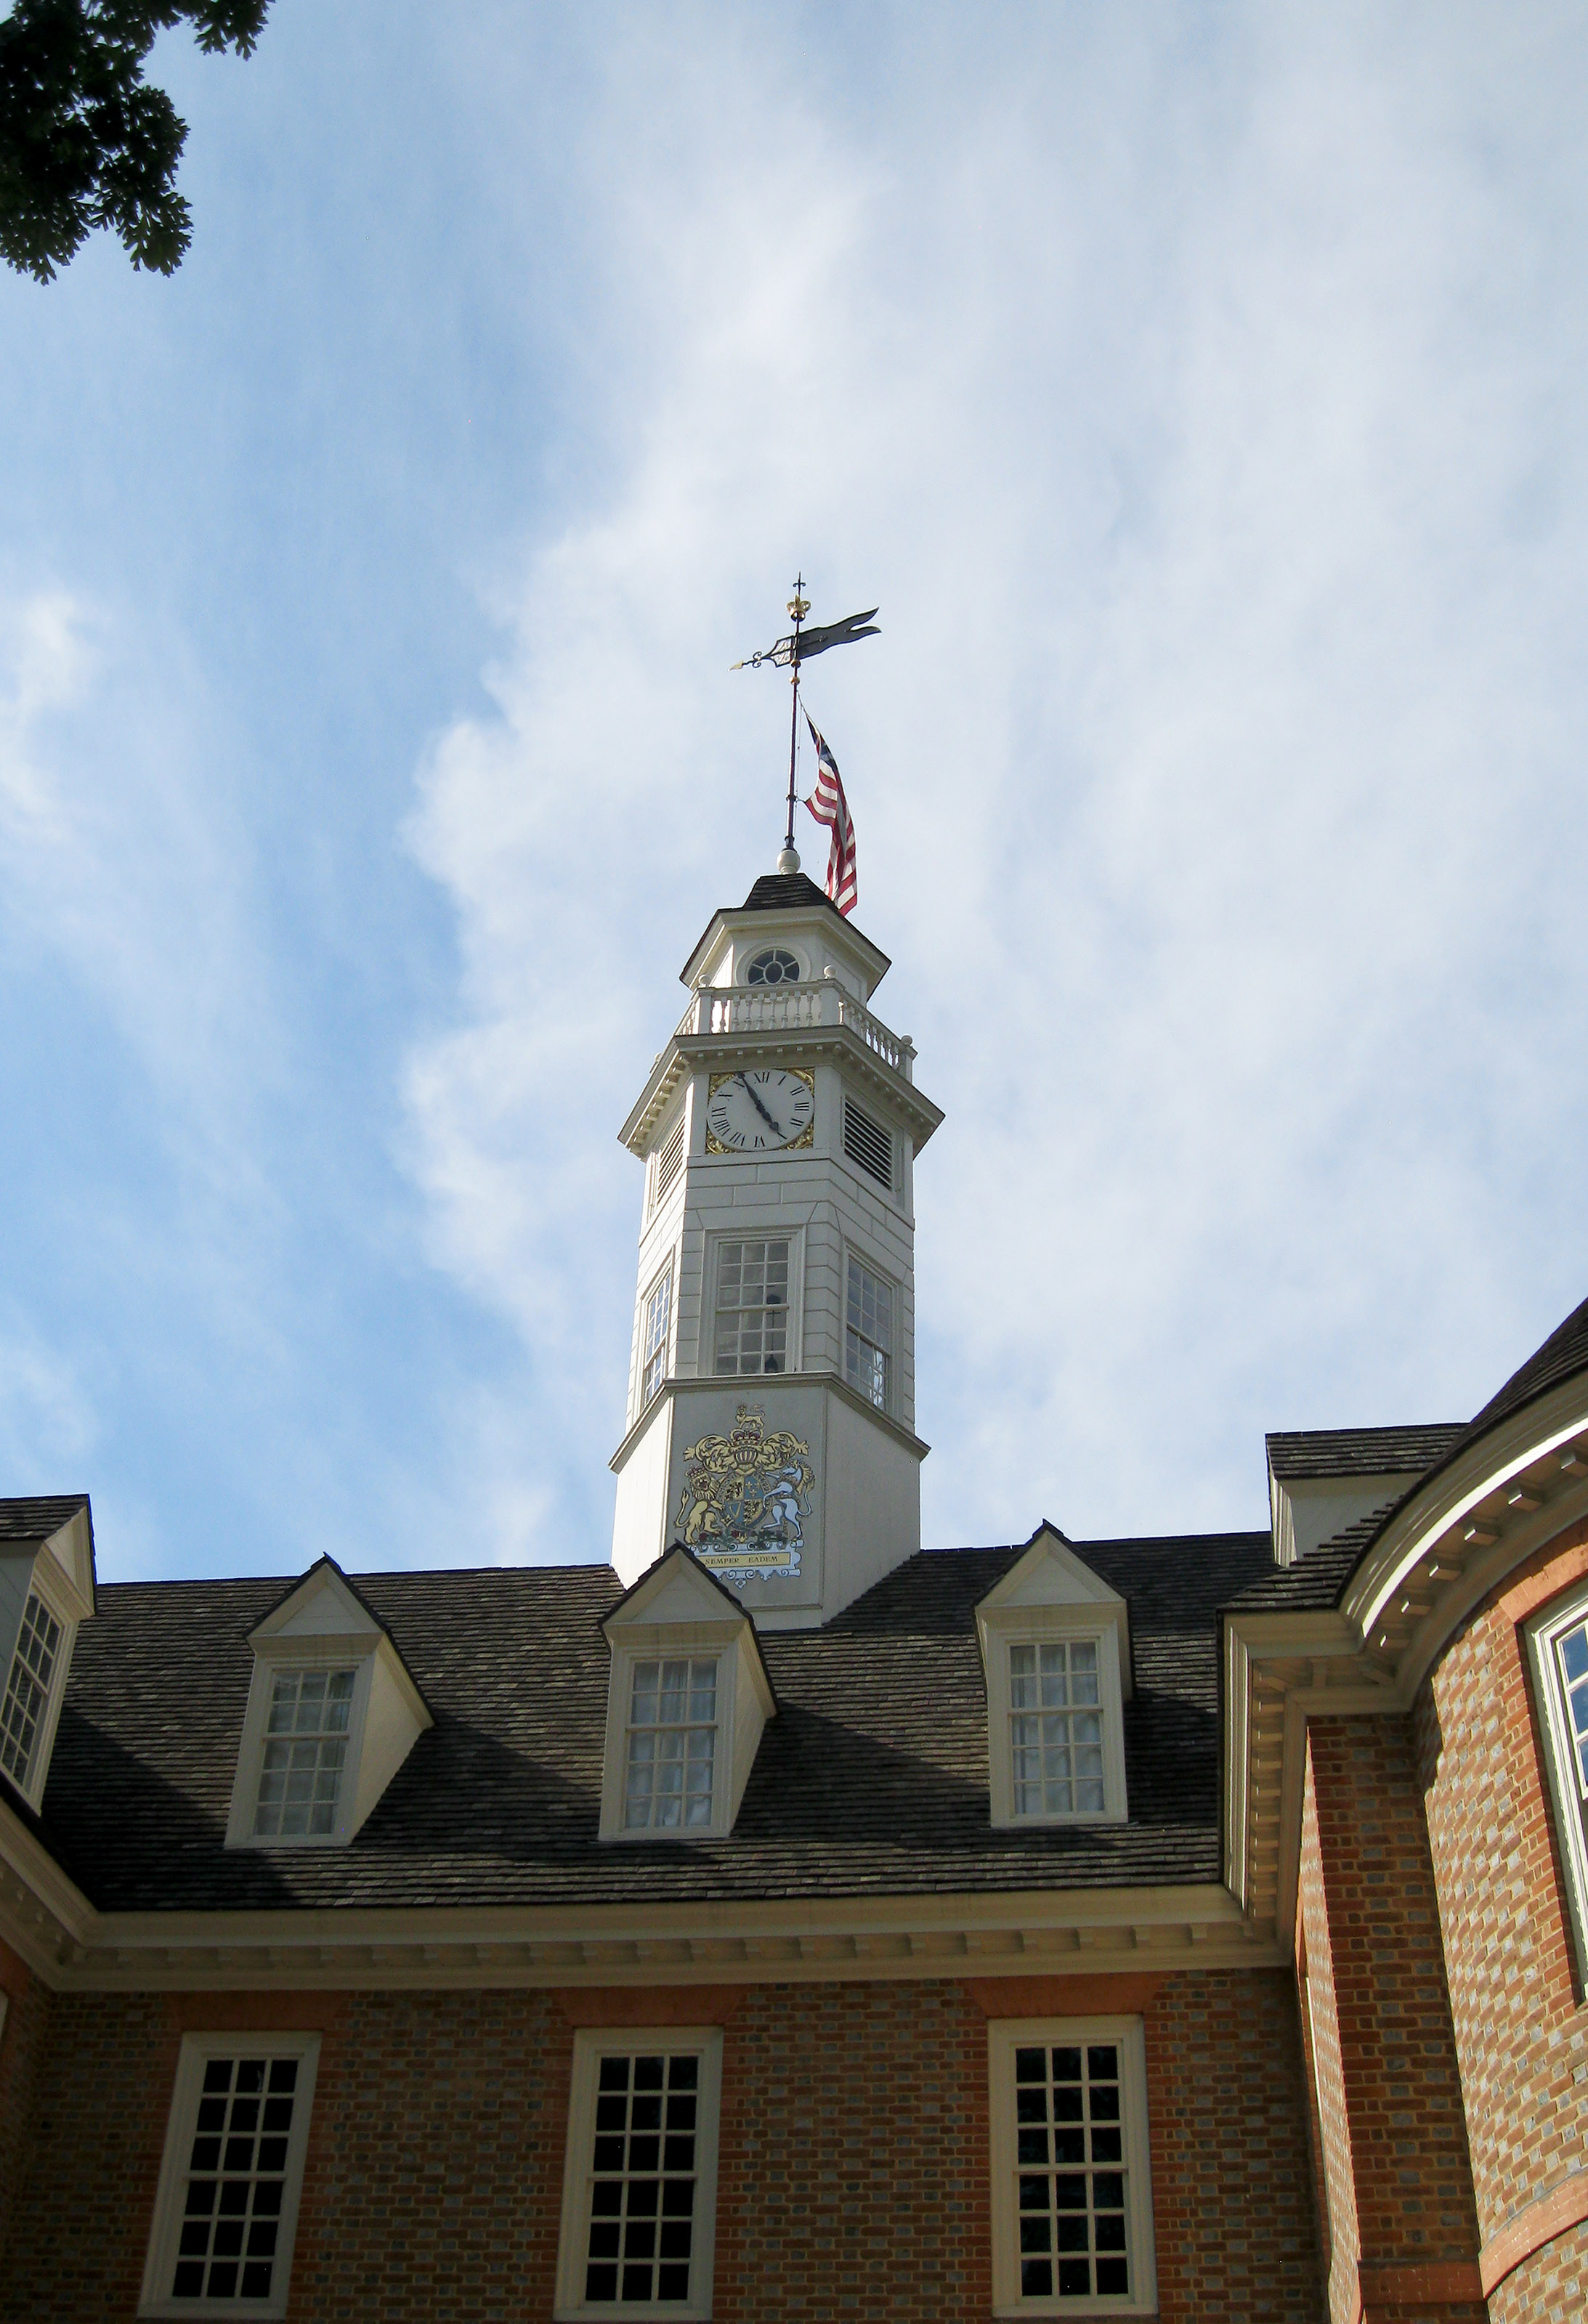 A U.S. flag waves proudly in the breeze above the Capitol in Colonial Williamsburg. The state government occasionally meets in the building to keep it designated as an active Capitol. Groups can tour the building or take part in mock witch trials. Photo by Alyssa Cobb.